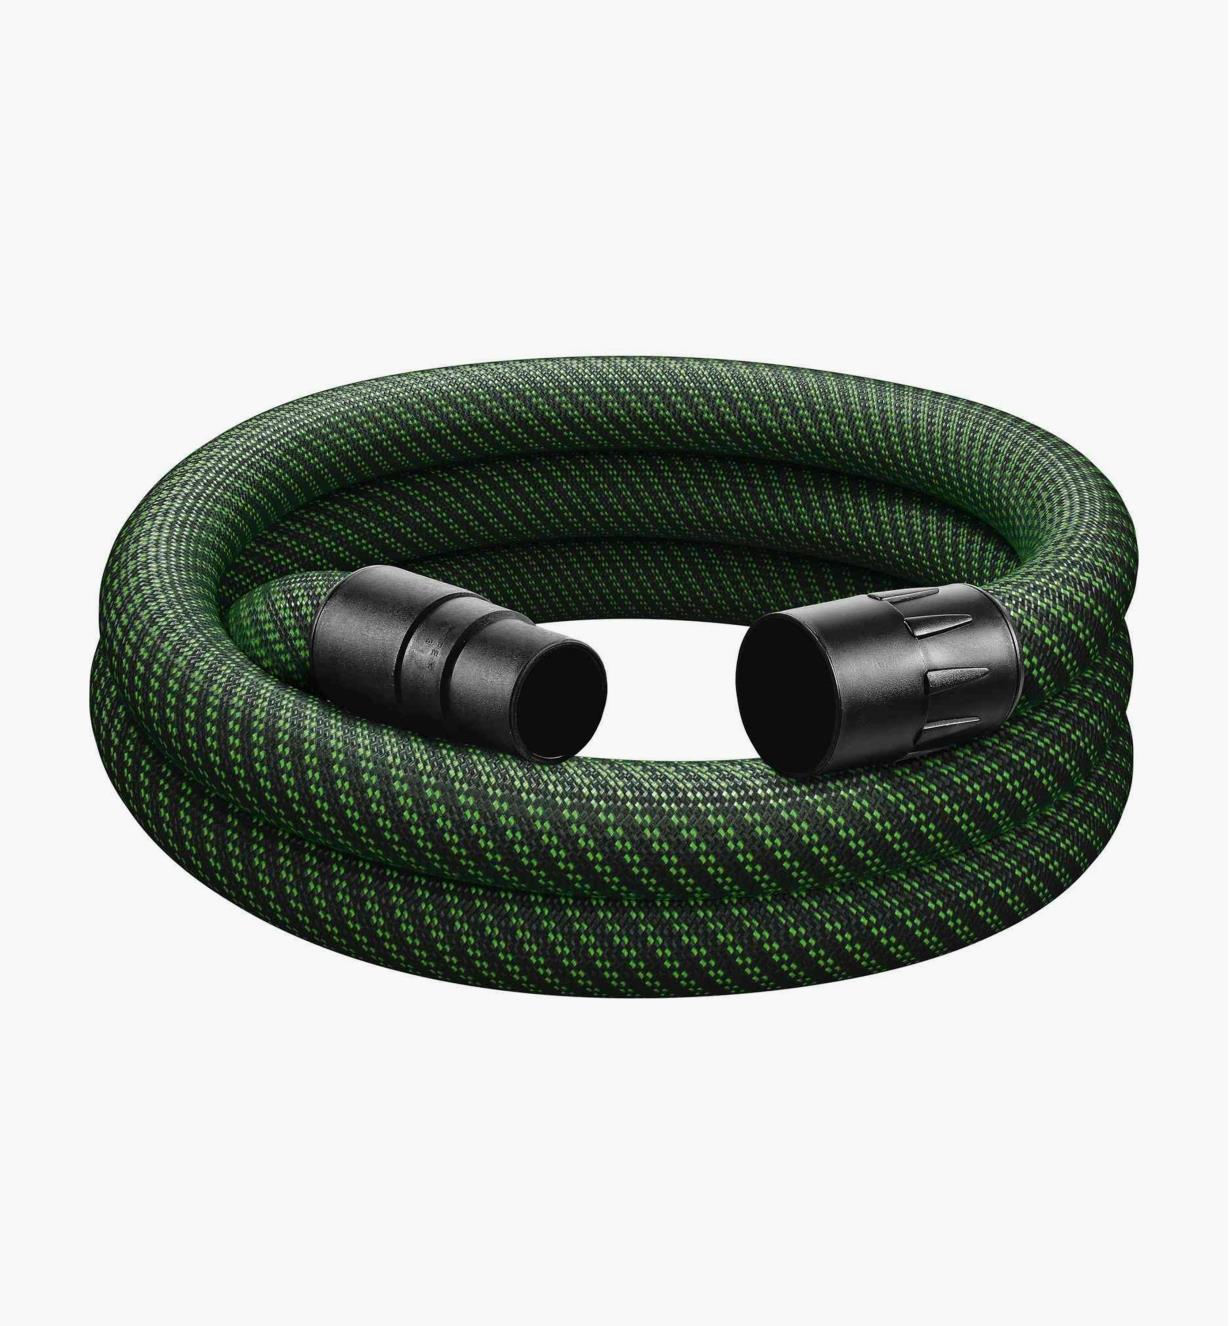 "ZA500681 - 36mm x 3.5m (1 7/16"" x 11'6"") Anti-static Hose"